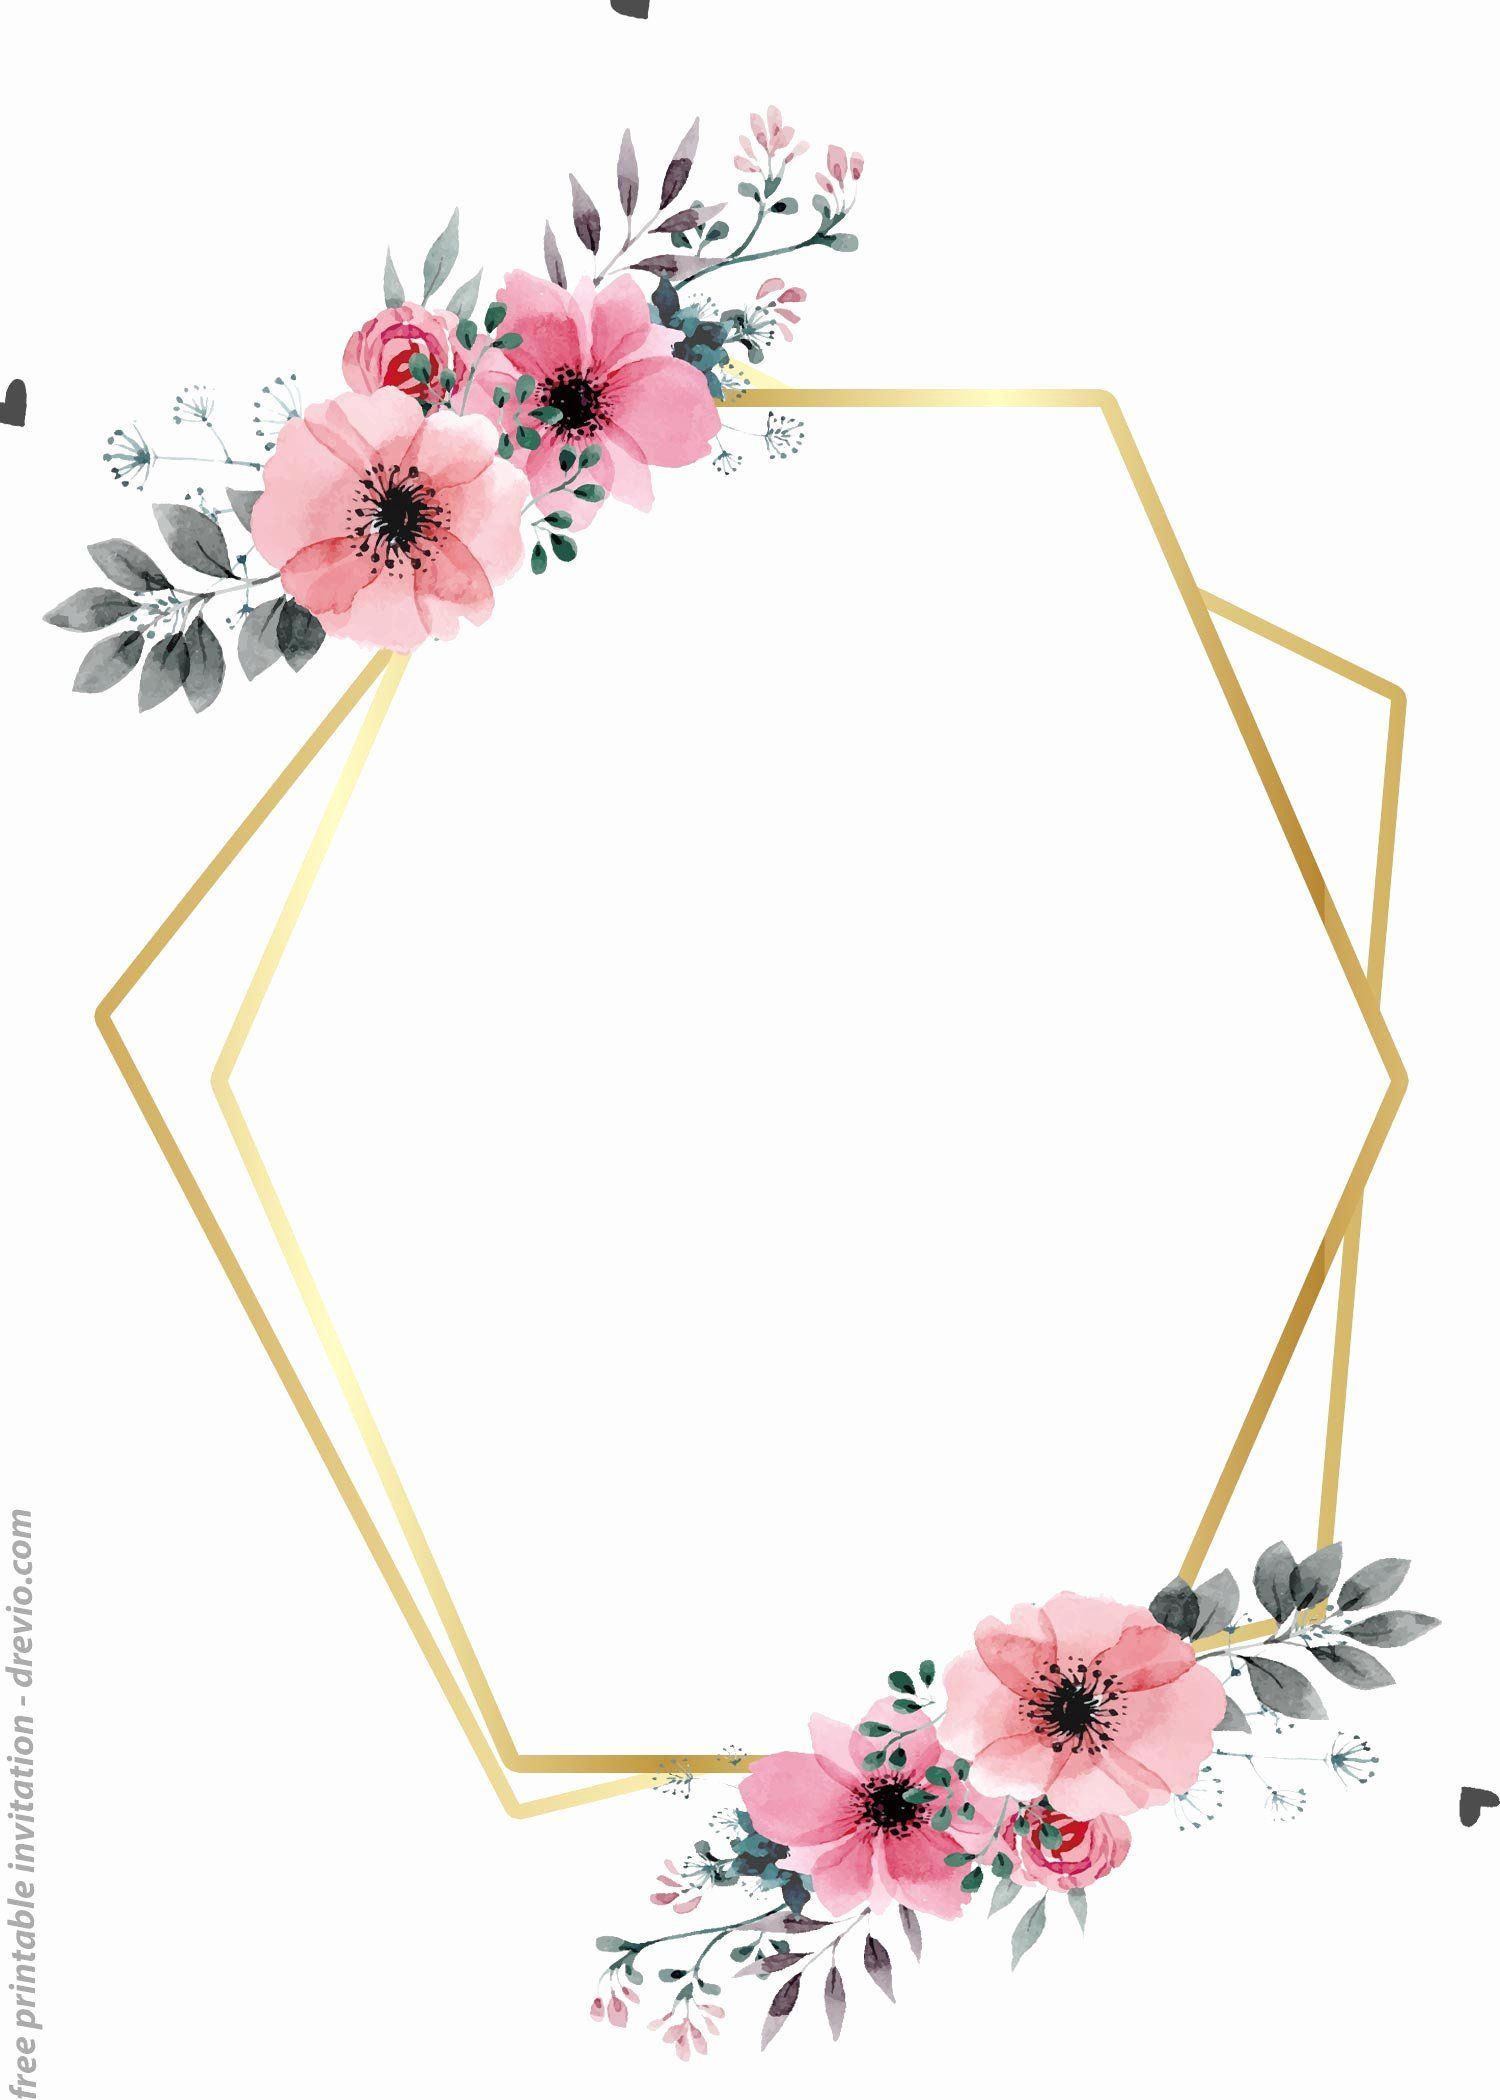 Flower Invitation Template New 24 Free Printable Floral Watercolor I Free Printable Birthday Invitations Free Printable Invitations Floral Invitations Template